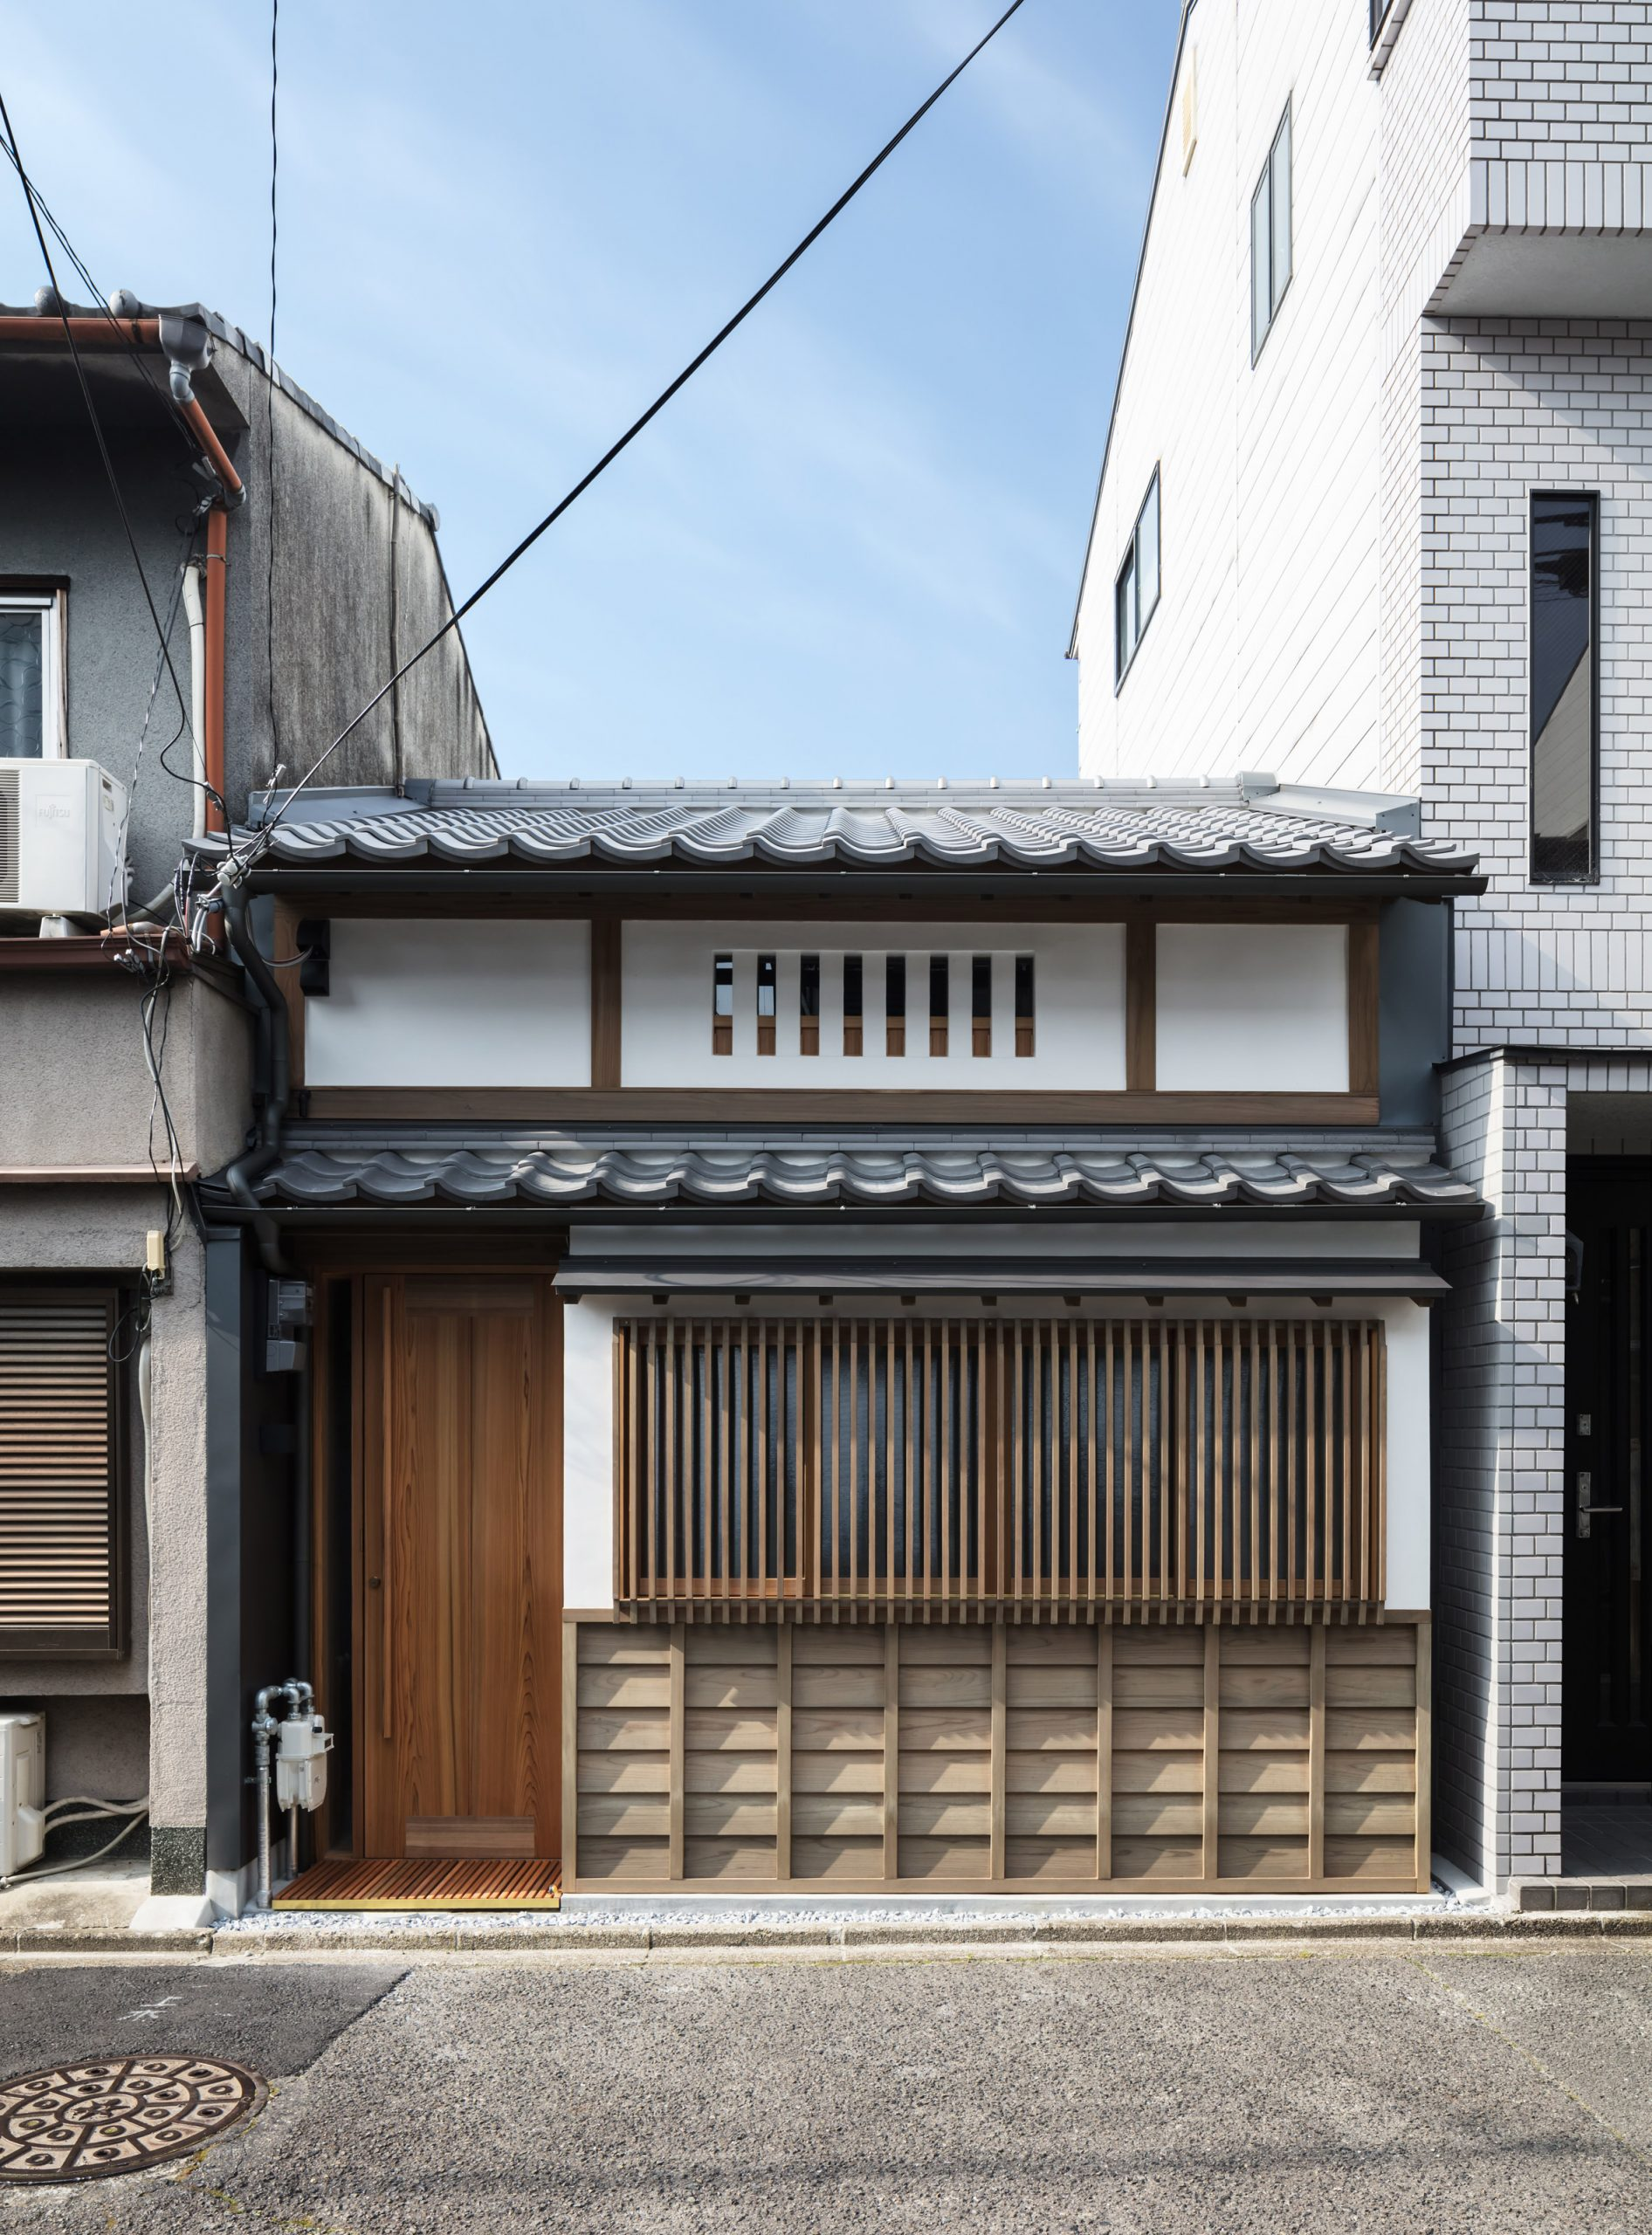 Old row house in Kyoto